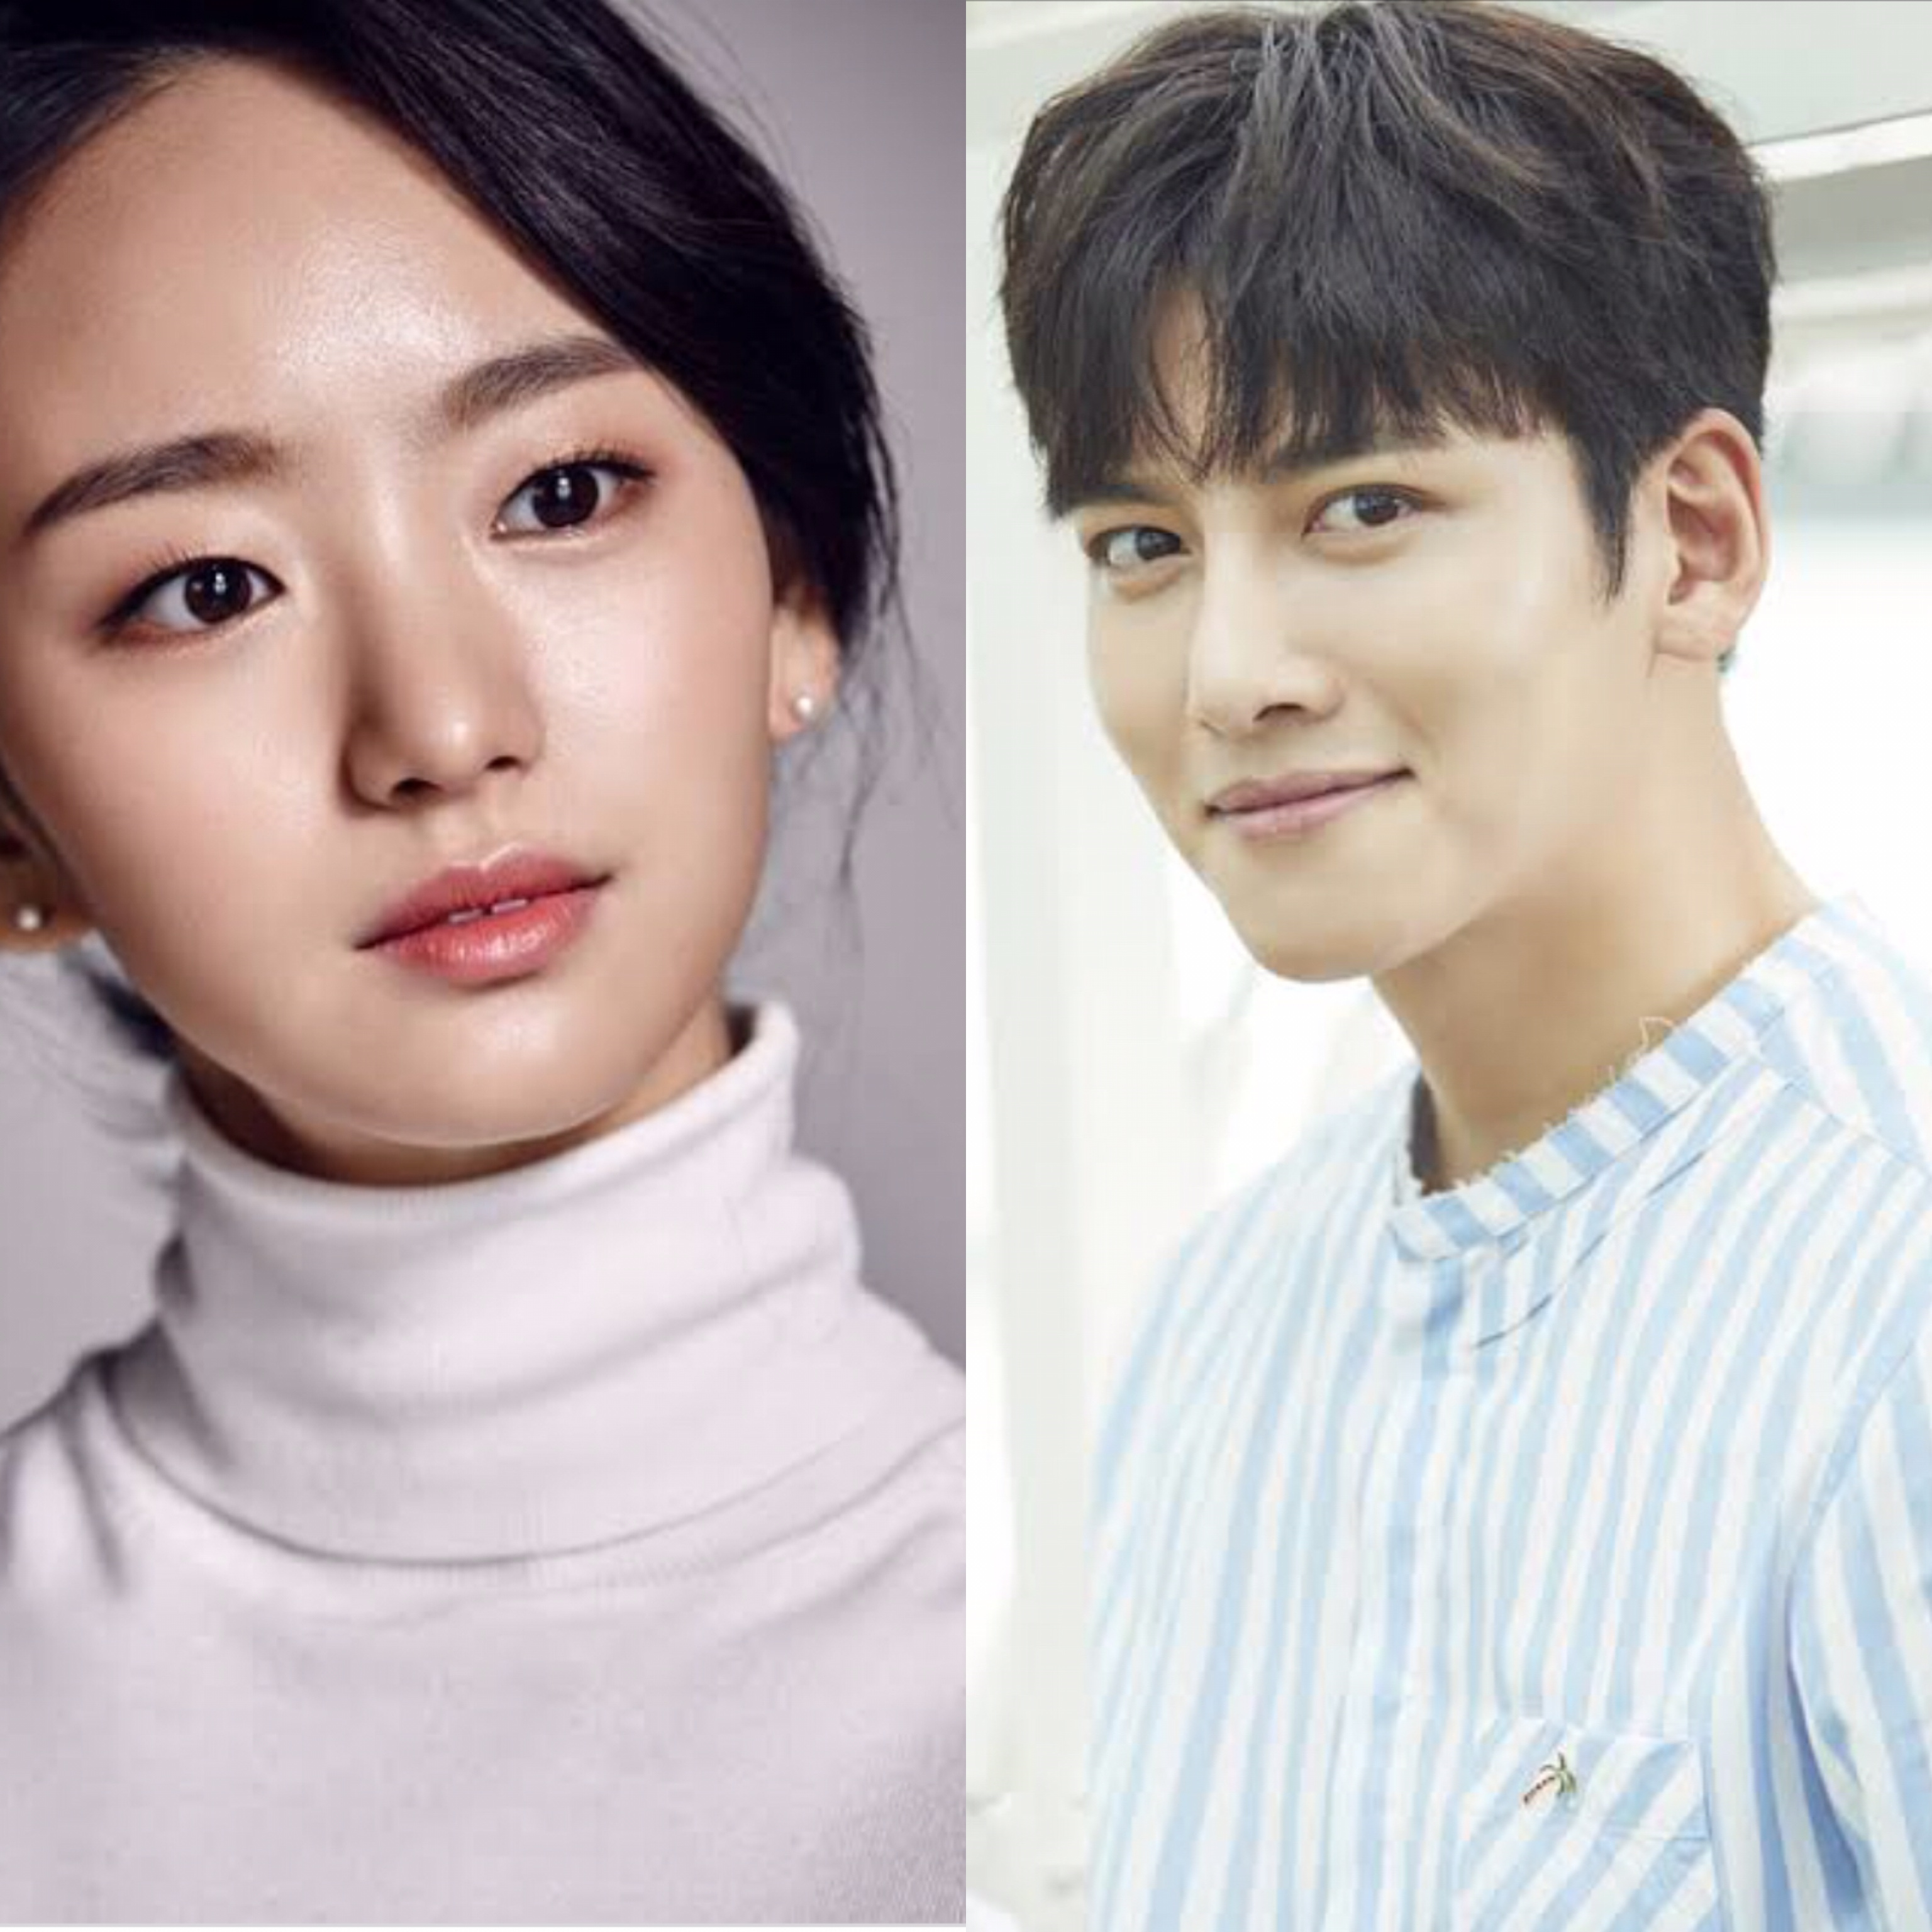 tvN Confirms Ji Chang Wook's Co-Star in Drama